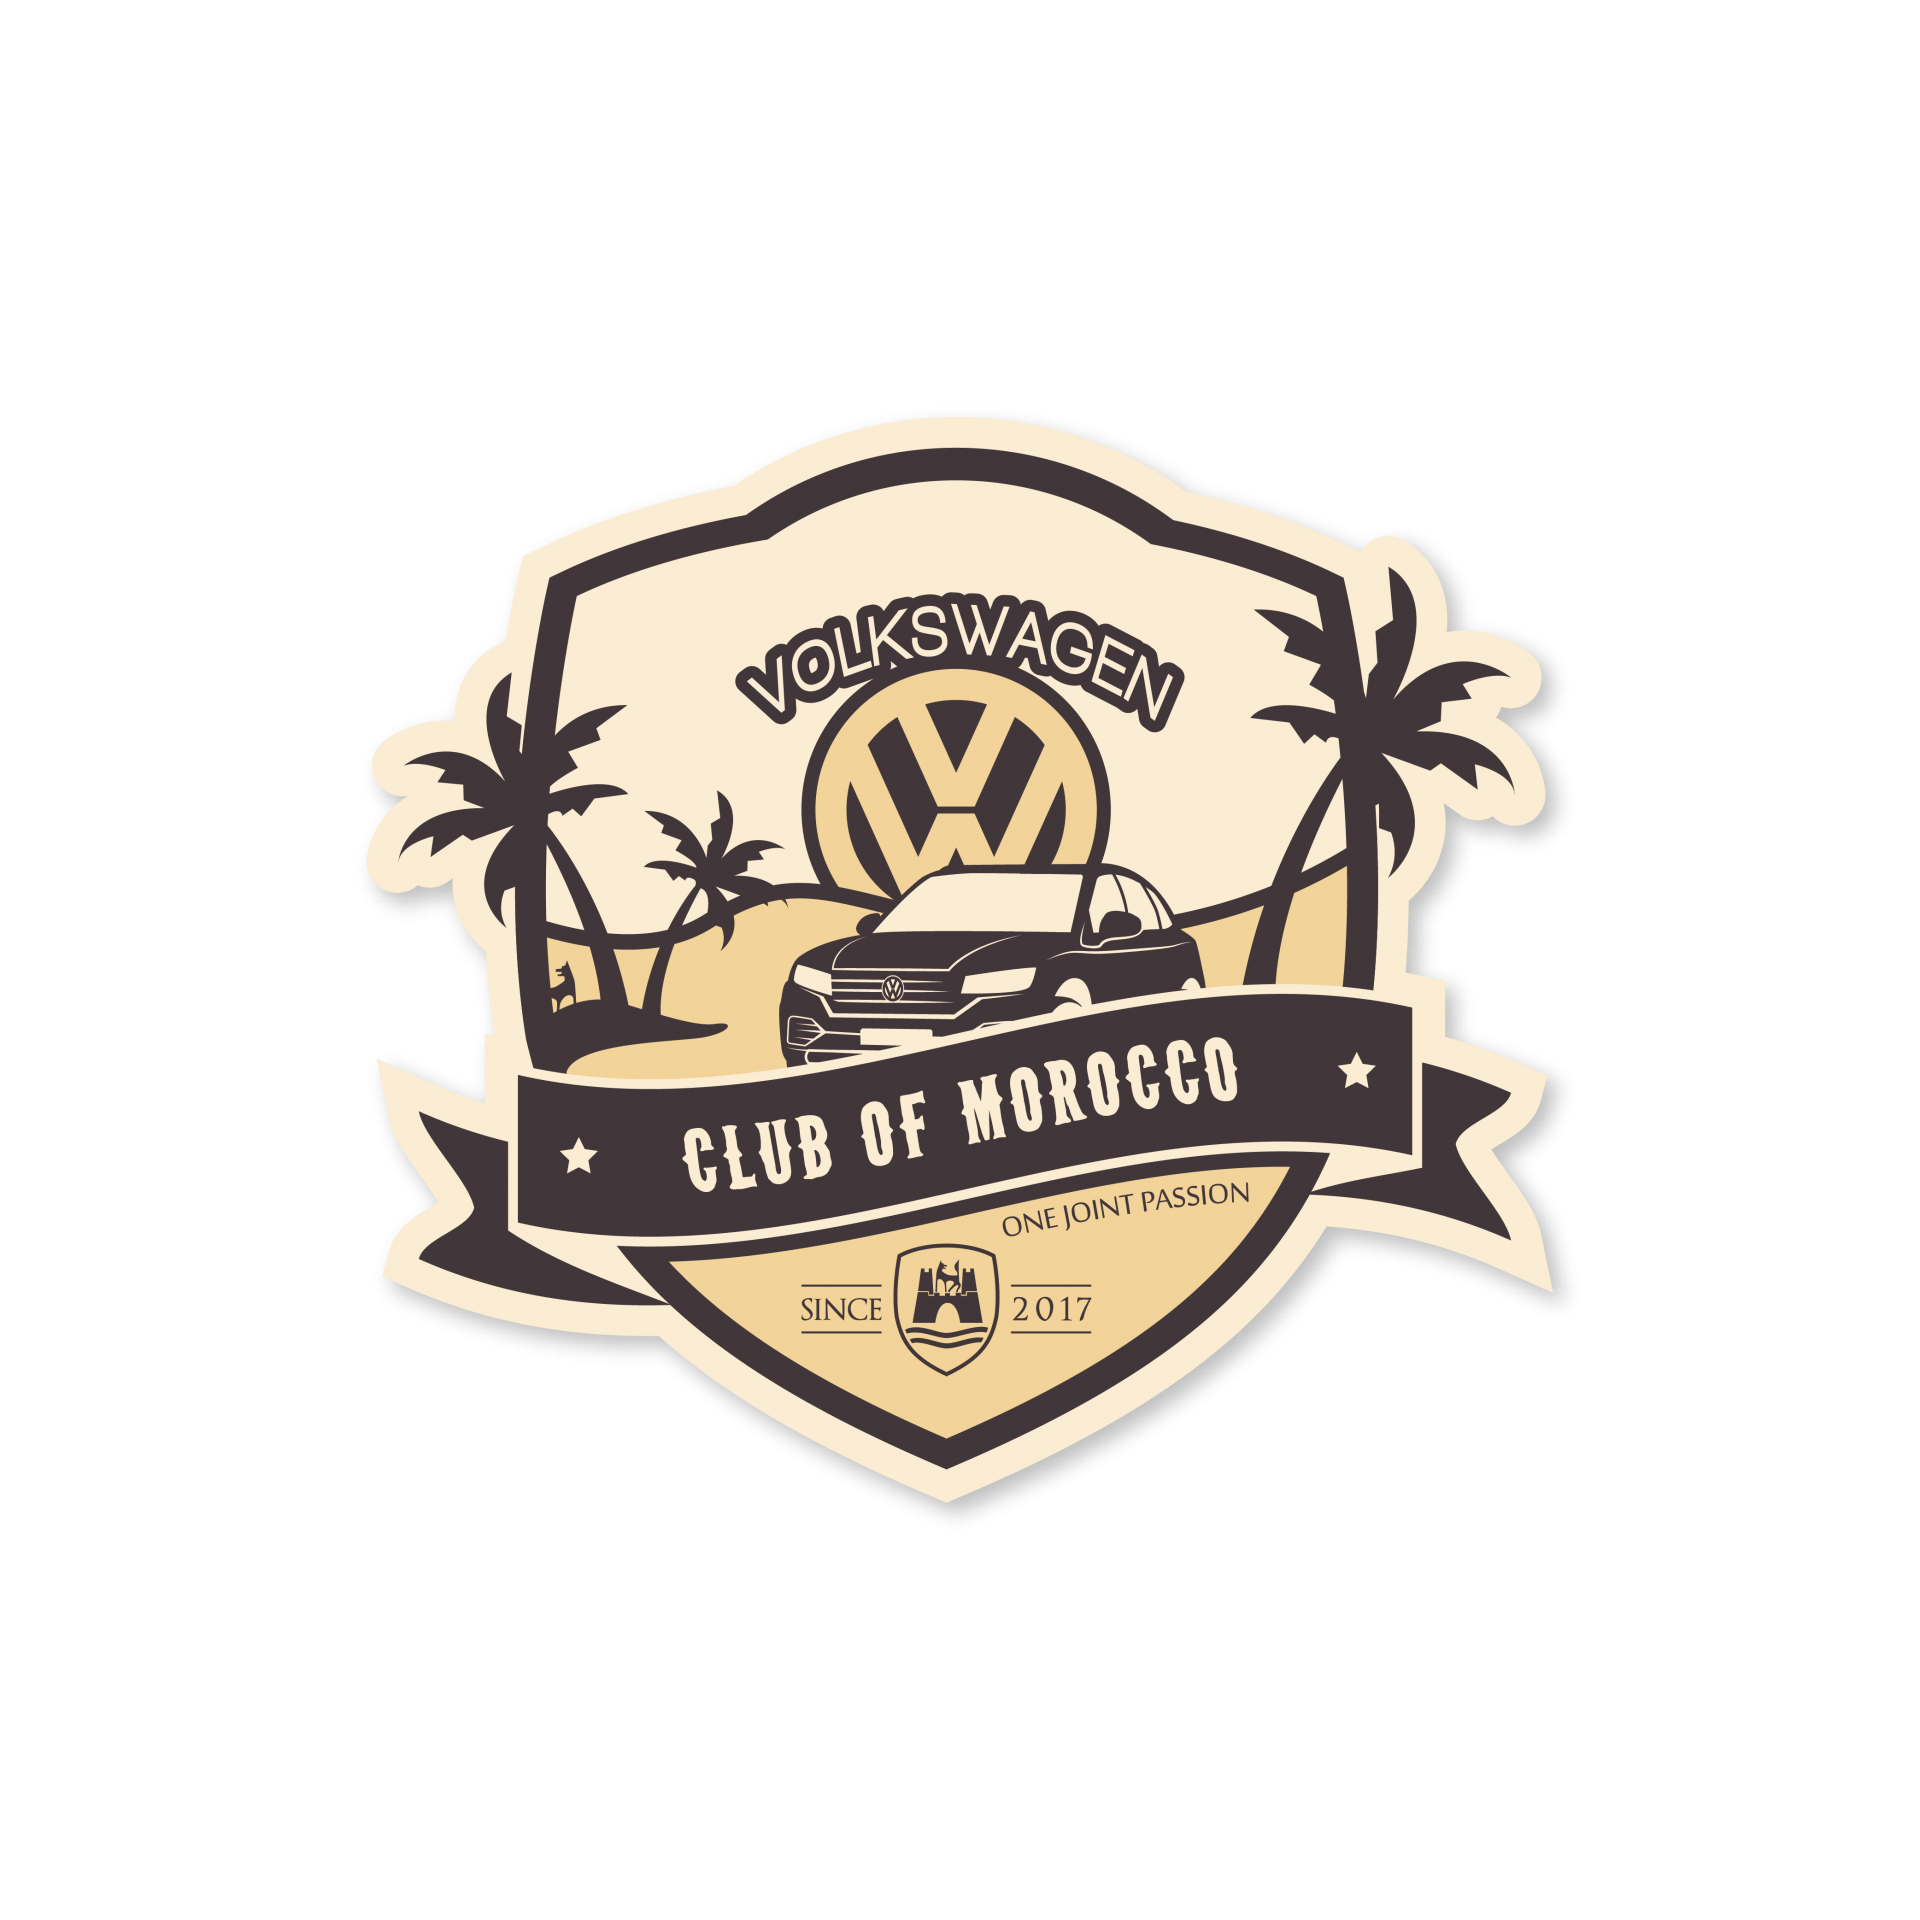 Volkswagen Club Of Morocco logo